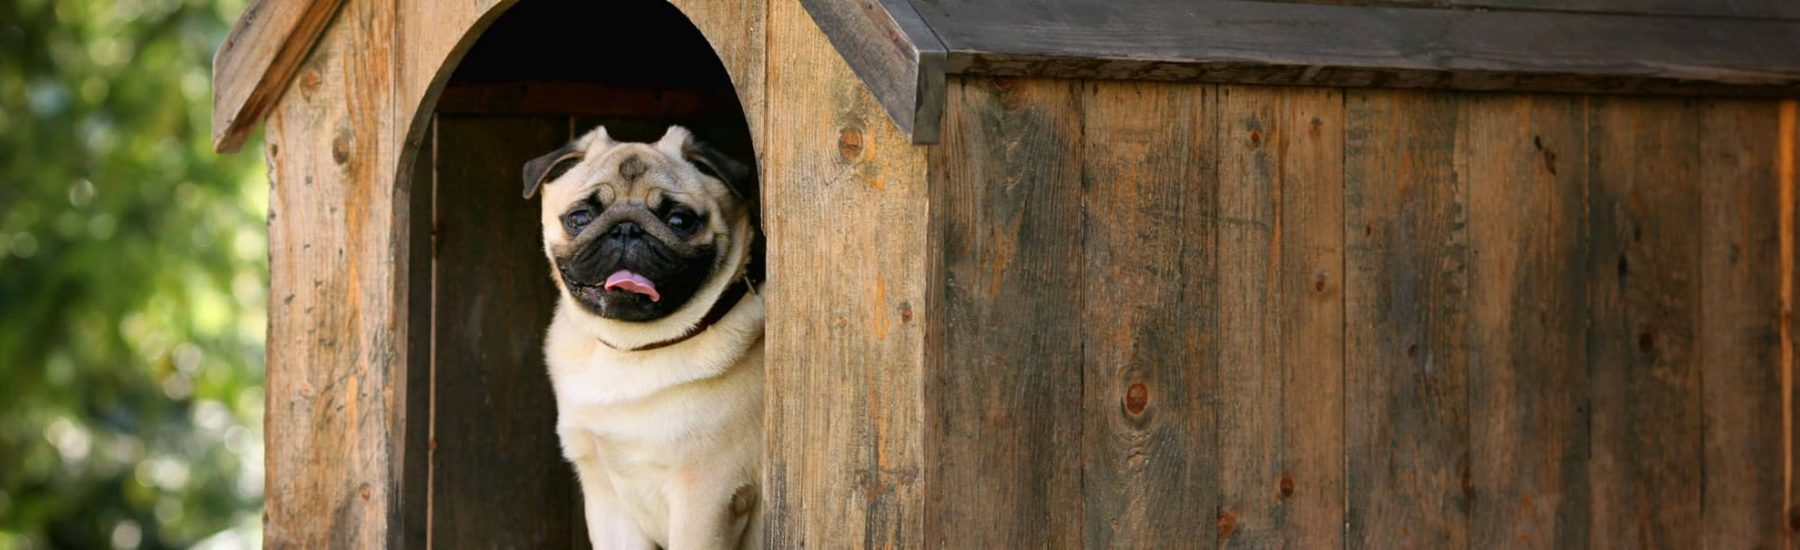 French Bulldog in a Dog House